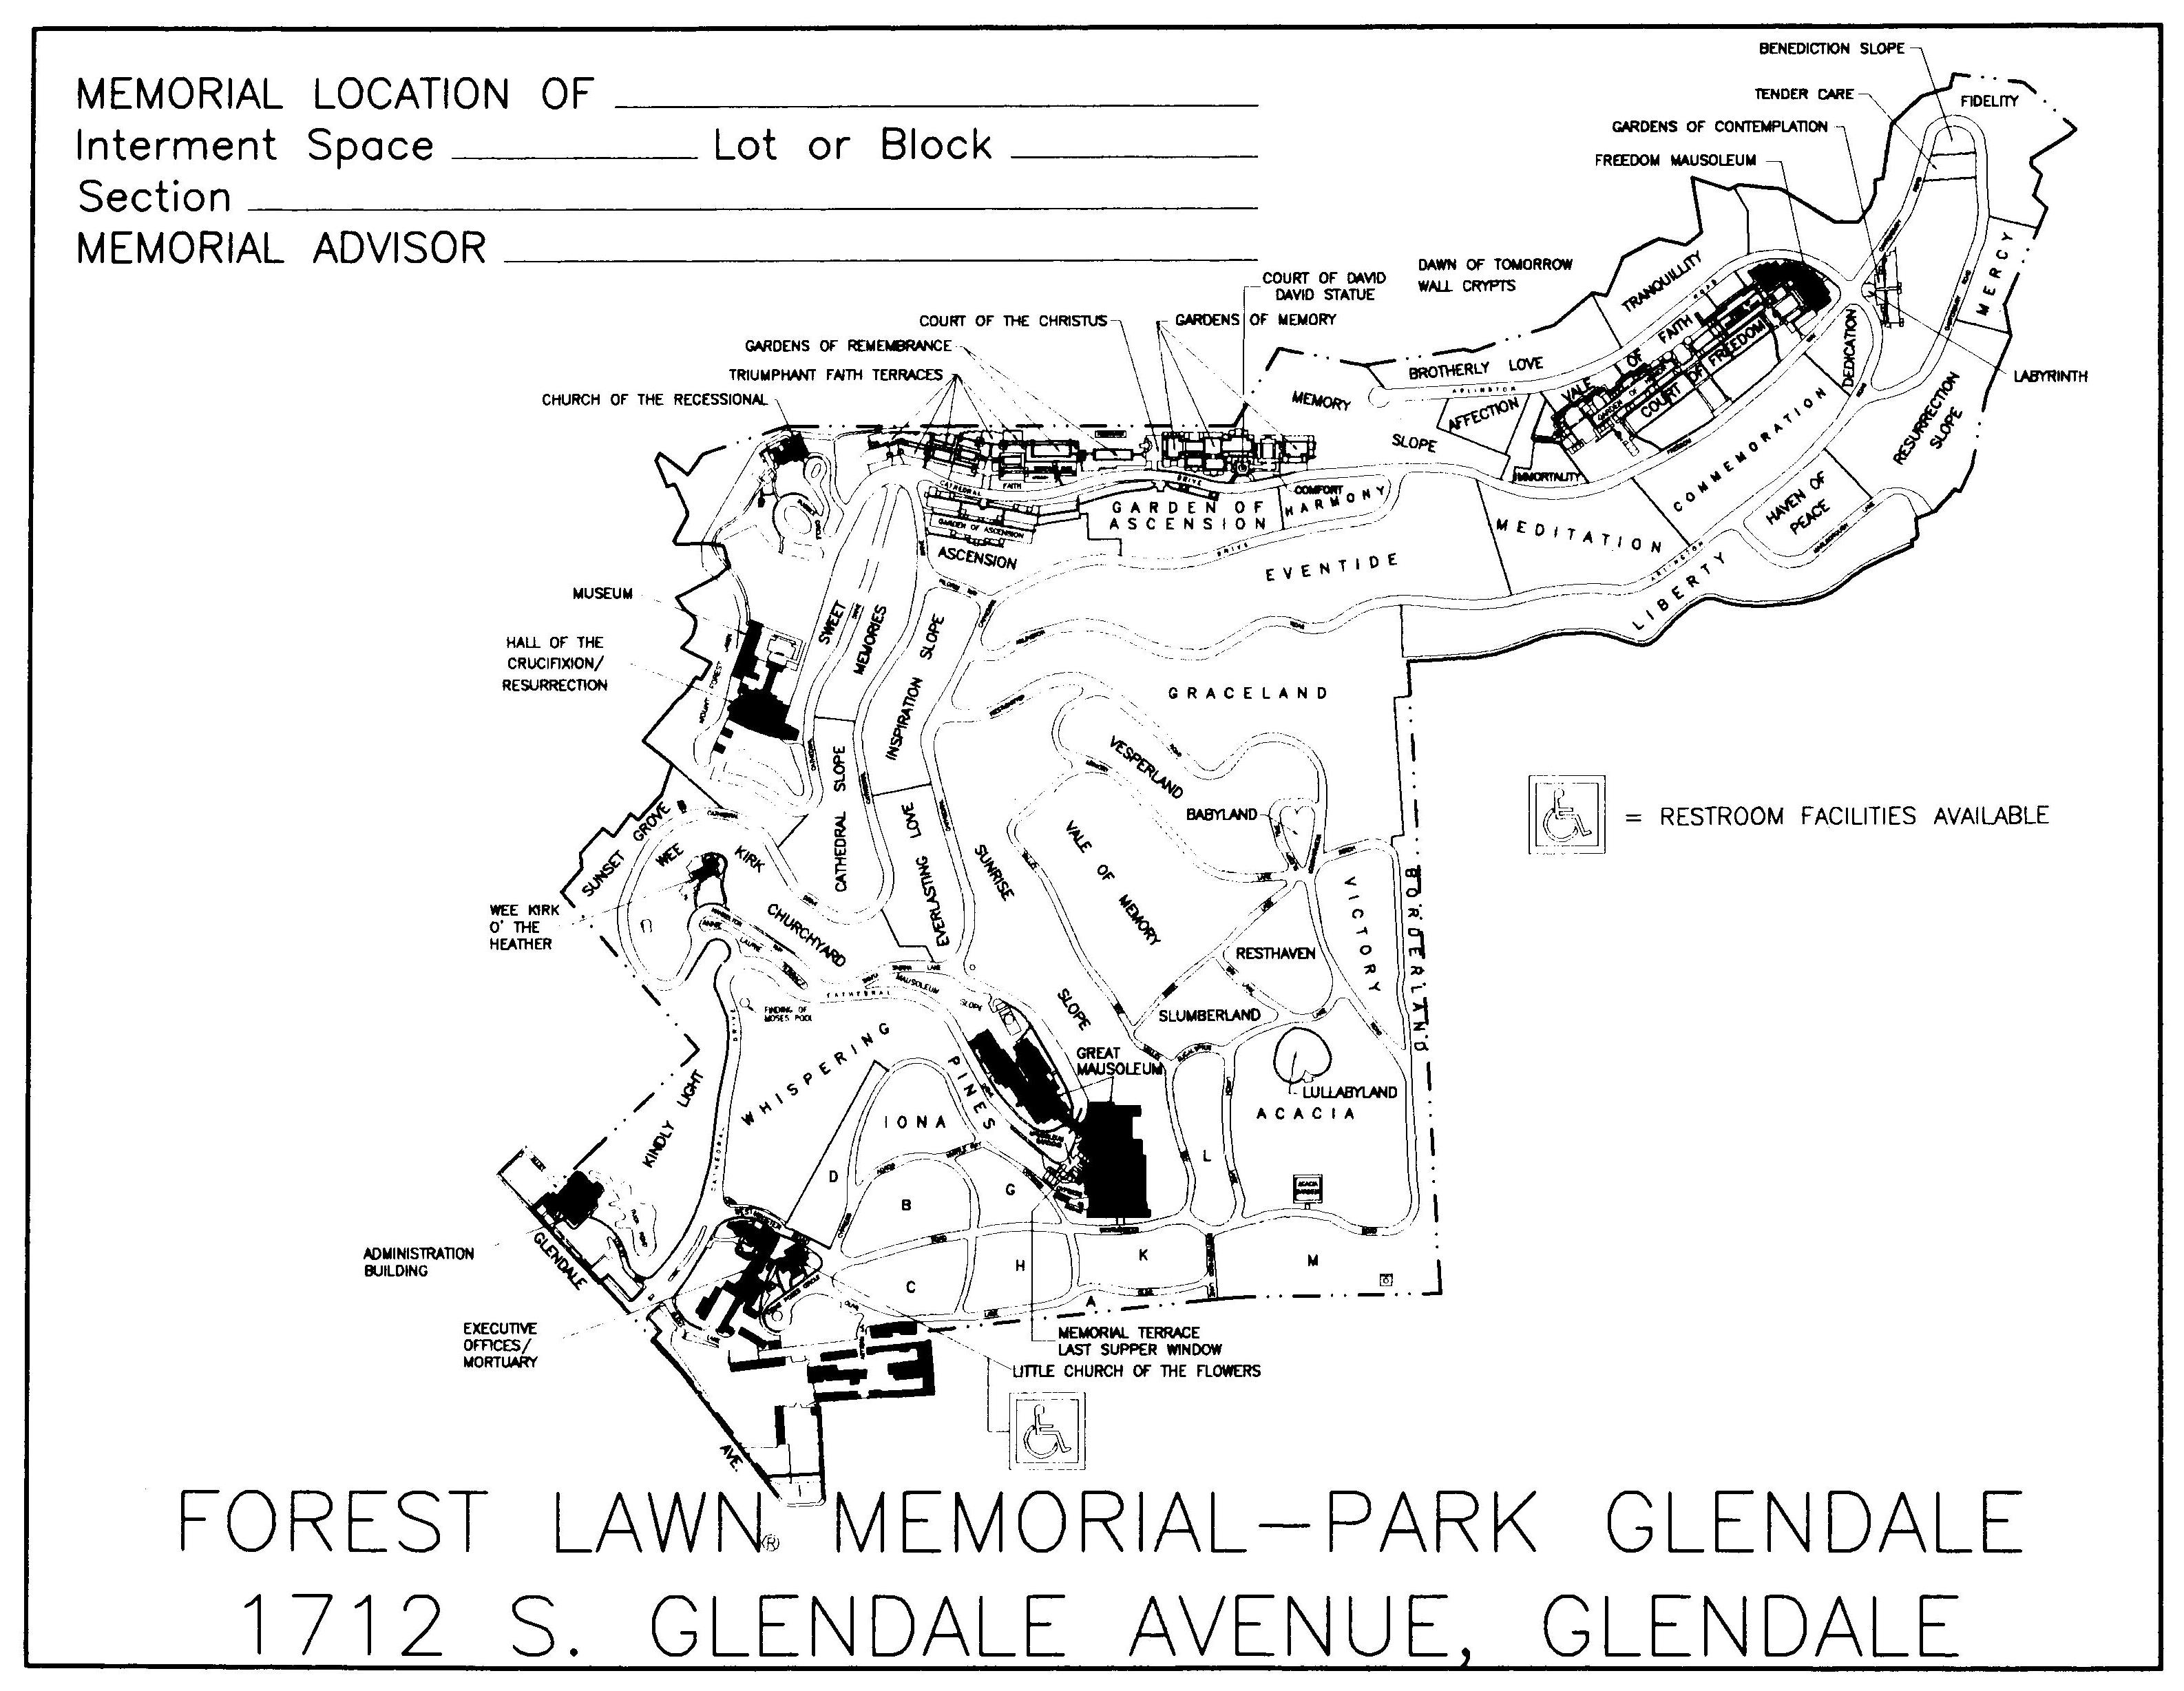 ForestLawn-Glendale Glendale Forest Lawn Map on forest lawn glendale famous, forest lawn glendale jobs, downtown glendale map, city of glendale ca zoning map, forest lawn glendale celebrities, burbank california map, hollywood hills map, forest lawn glendale directions, forest lawn glendale art, forest lawn cemetery glendale, hollywood forever map, forest lawn glendale the builders dreed, forest lawn glendale ca, forest lawn glendale hours, forest lawn glendale michael jackson tomb, cerritos ca map, hollywood cemetery map, westgate glendale map,